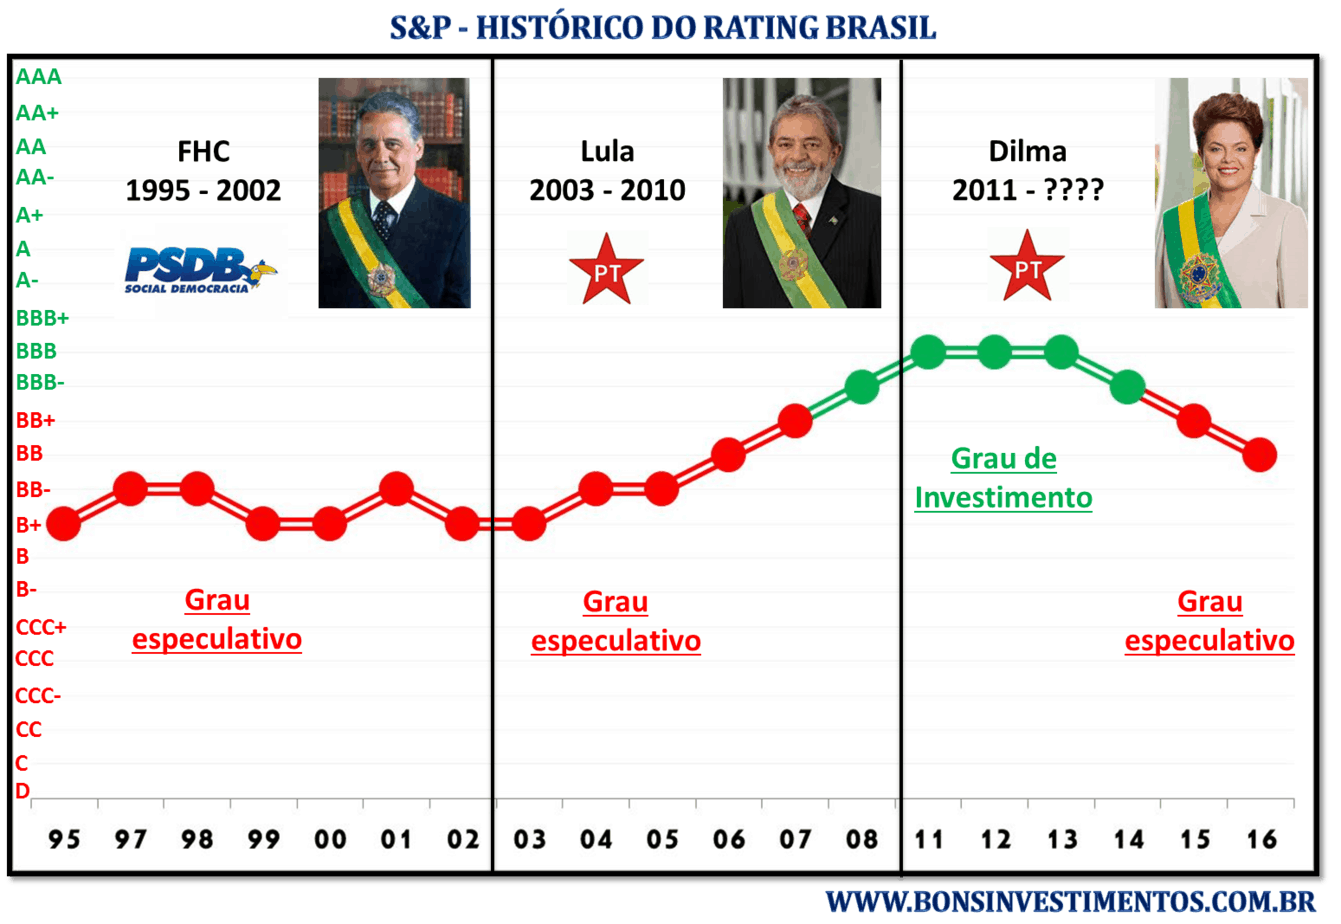 rating brasil s&p